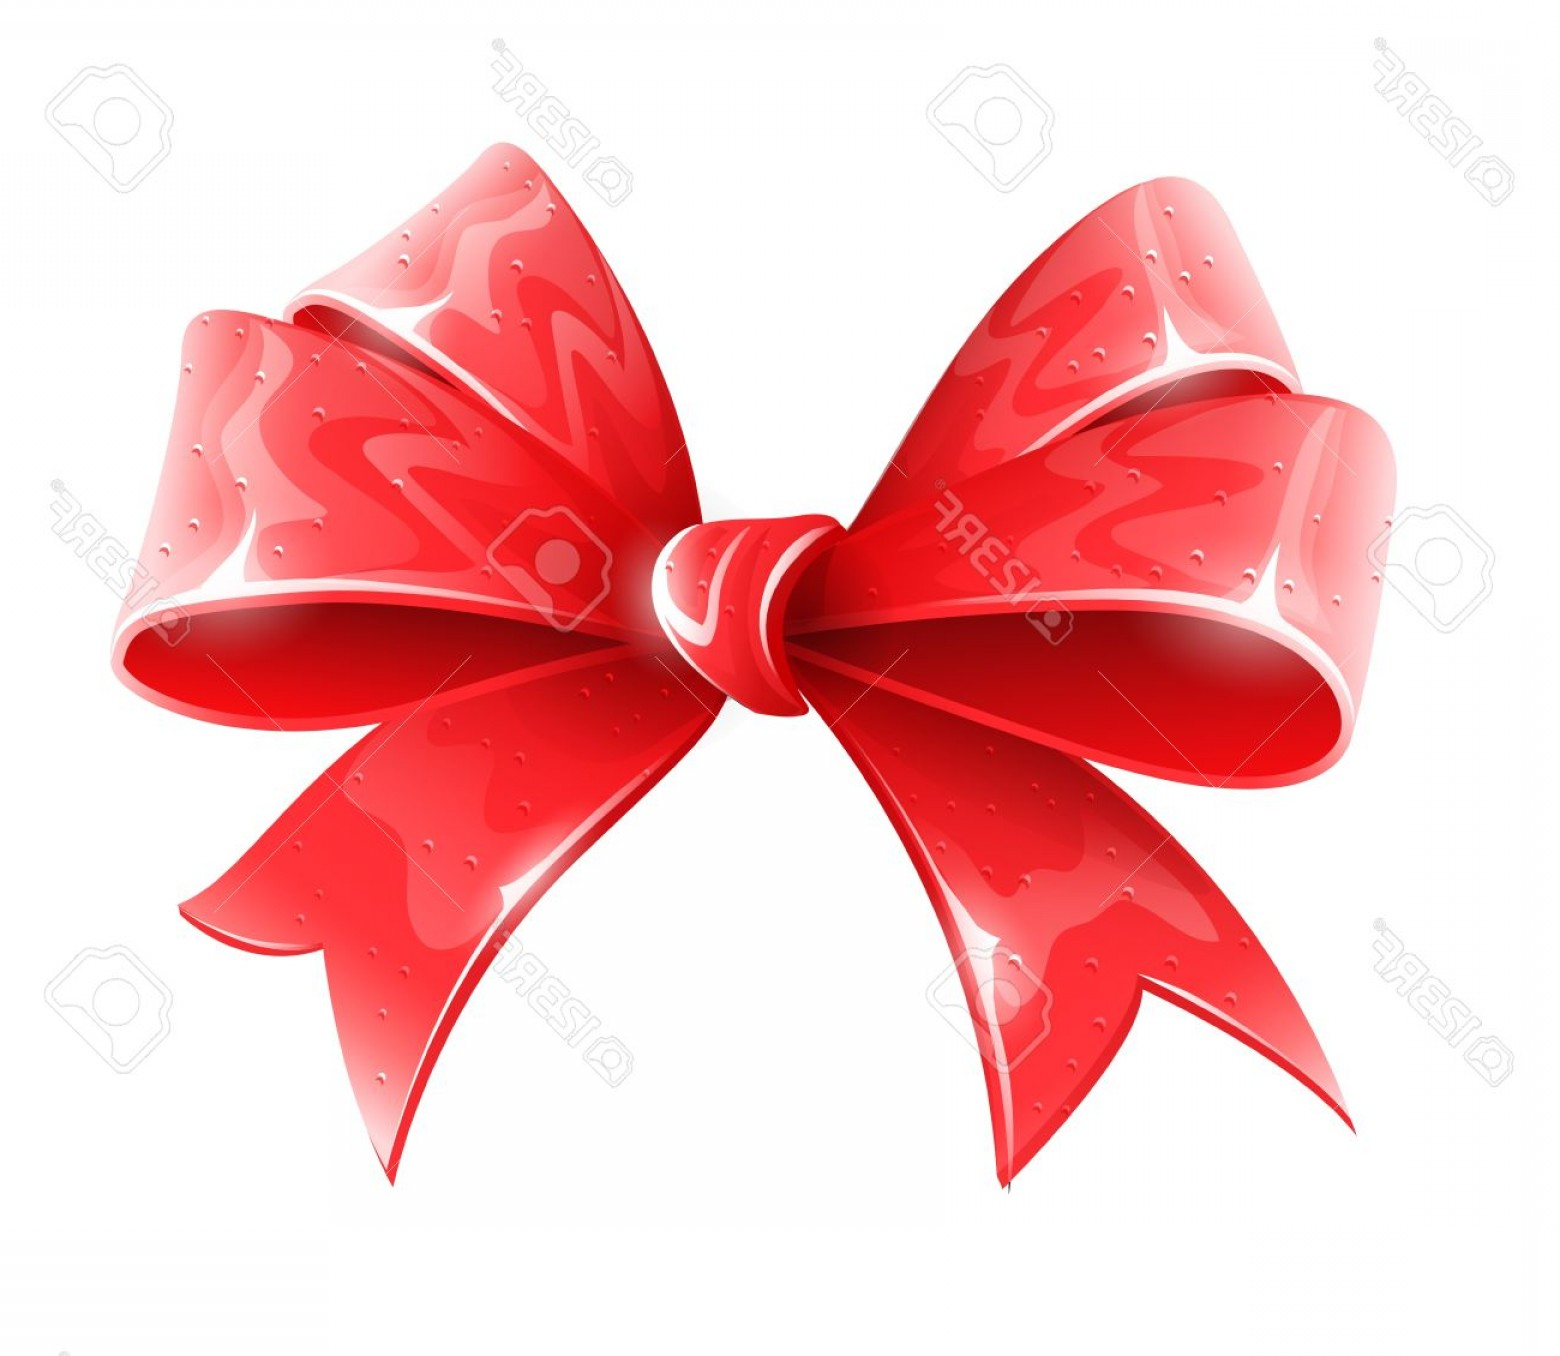 Hair Bow Clip Art Vector: Photored Bow For Holiday Gift Decoration Vector Illustration Isolated On White Background Eps Transpare